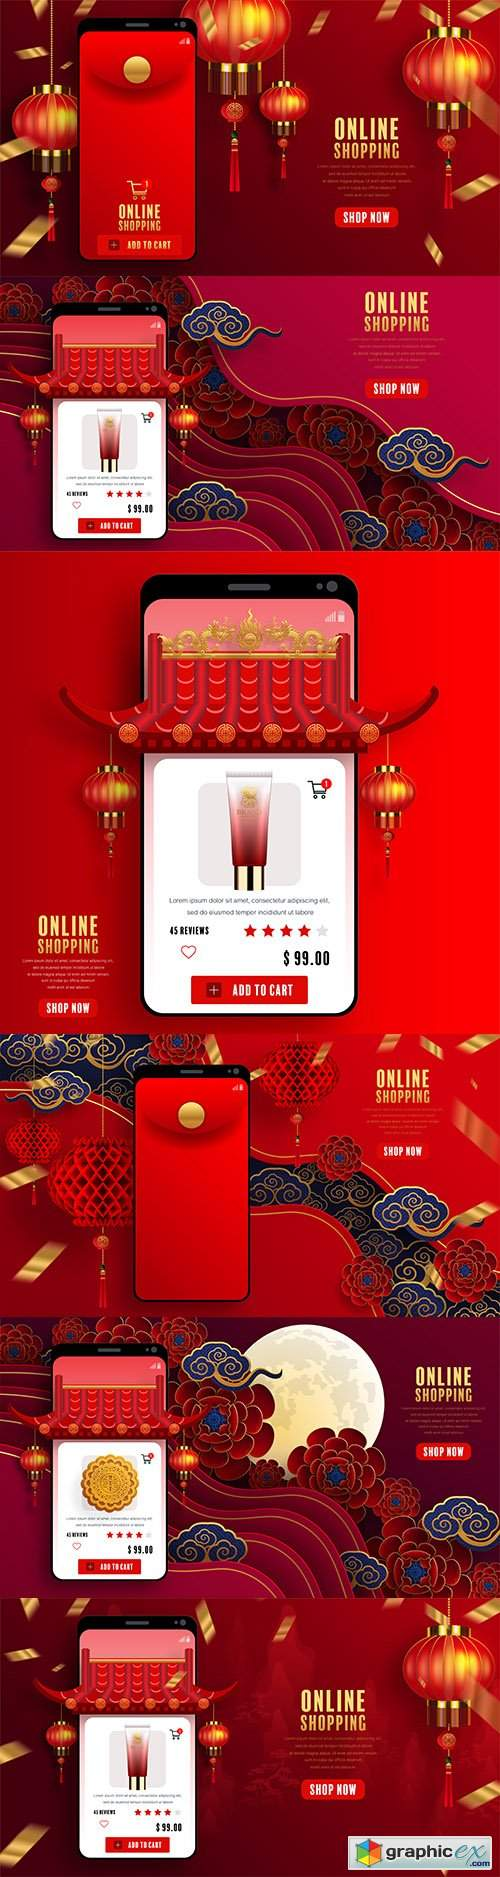 Online digital marketing store in mobile app Chinese background